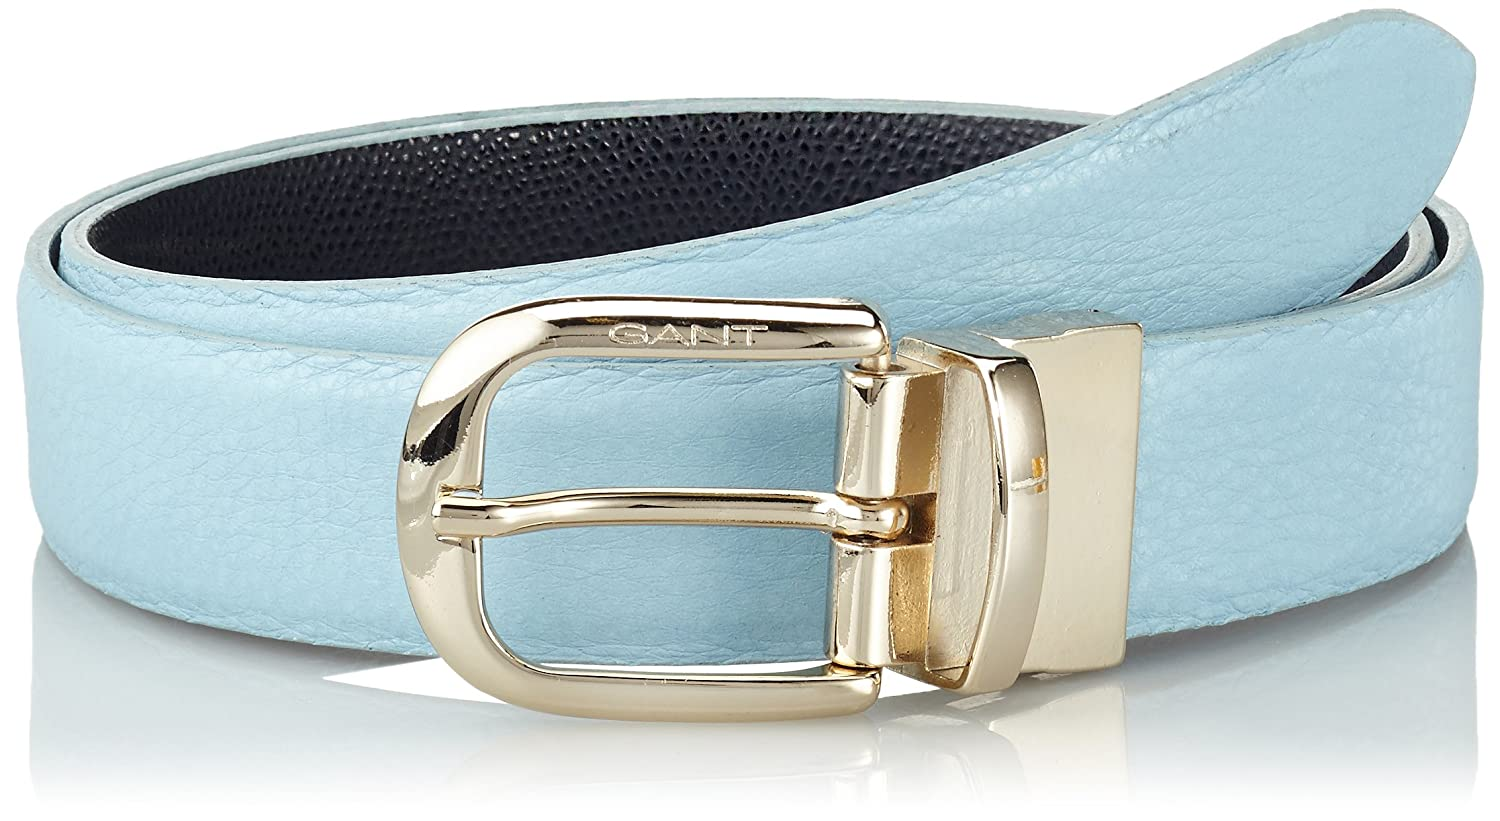 GANT Damen Gürtel Reversible Leather Belt